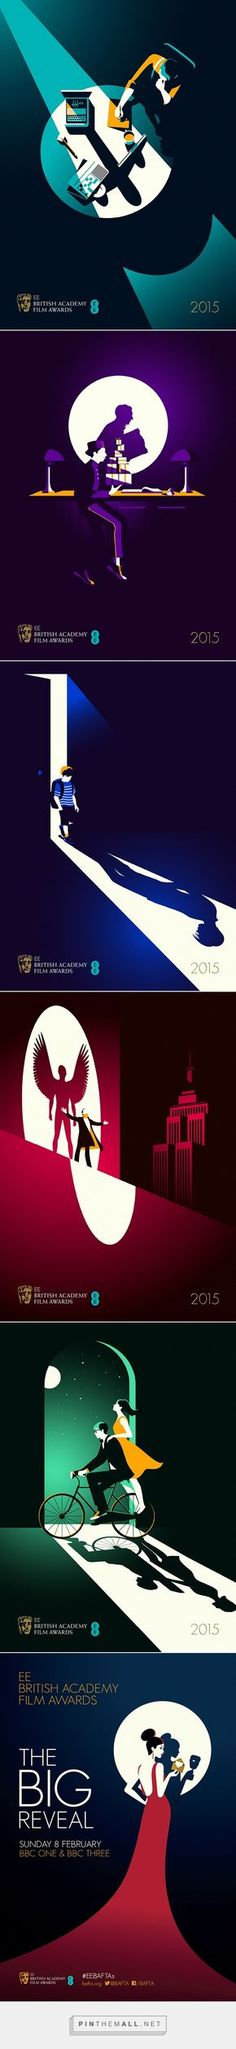 Malika Favre's terrific film noir-inspired posters for UK film's big night, the BAFTAs - created via http://pinthemall.net